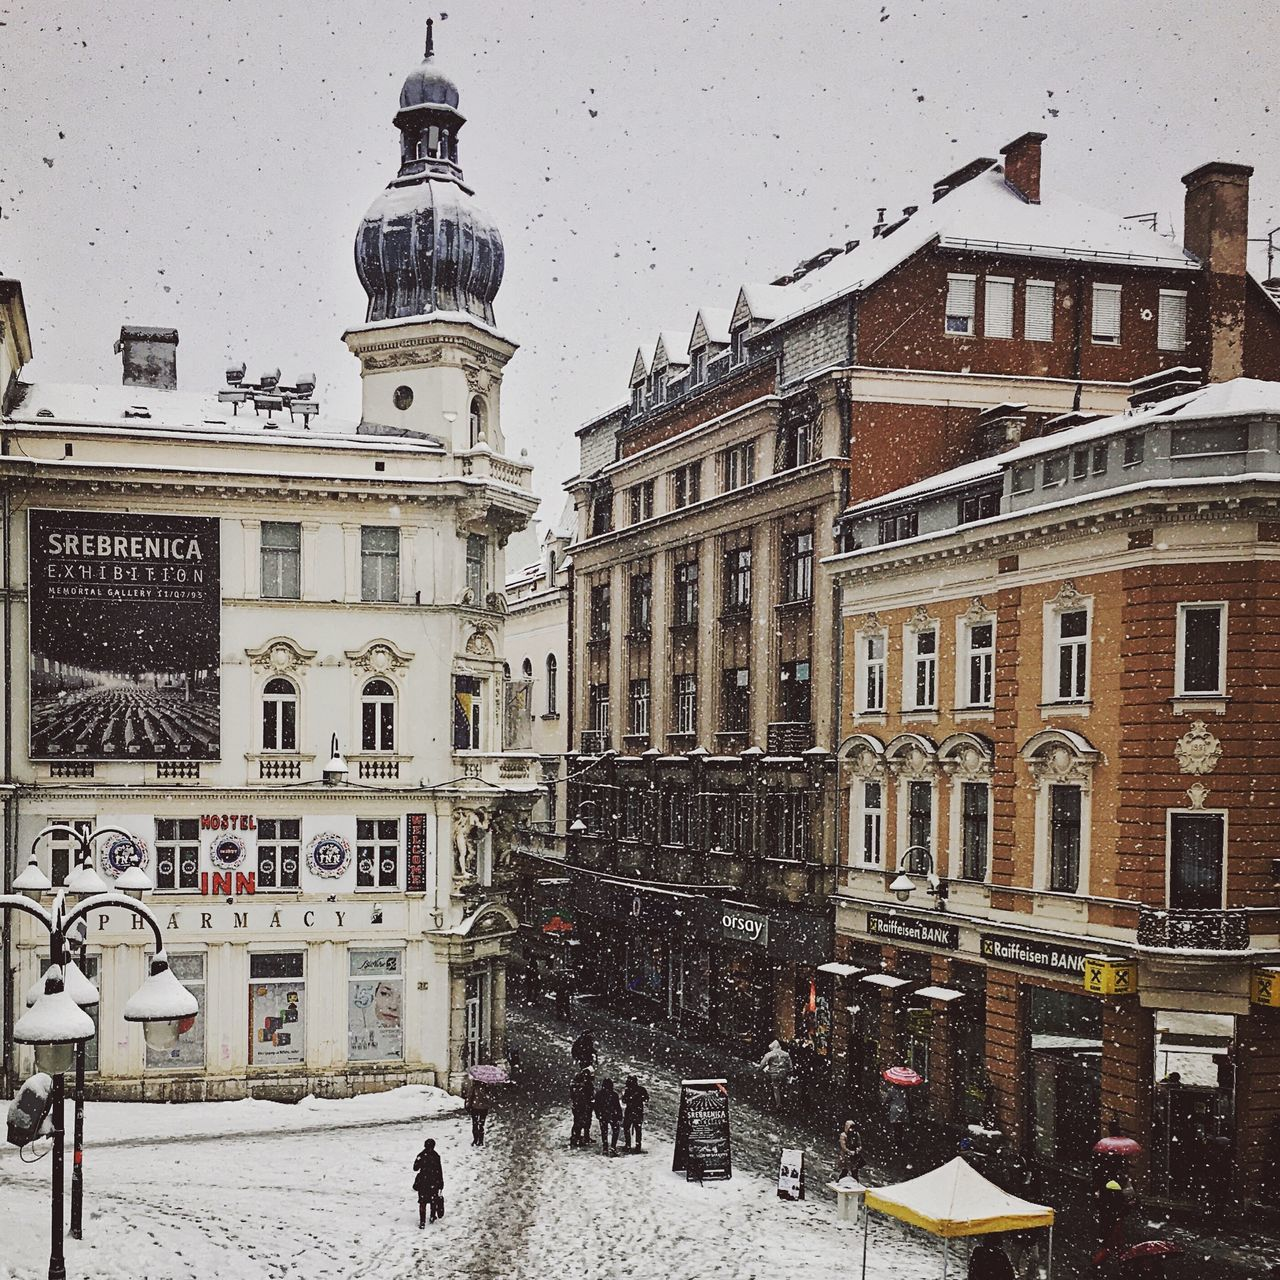 architecture, building exterior, built structure, snow, cold temperature, winter, weather, outdoors, city, snowing, day, sky, no people, nature, animal themes, mammal